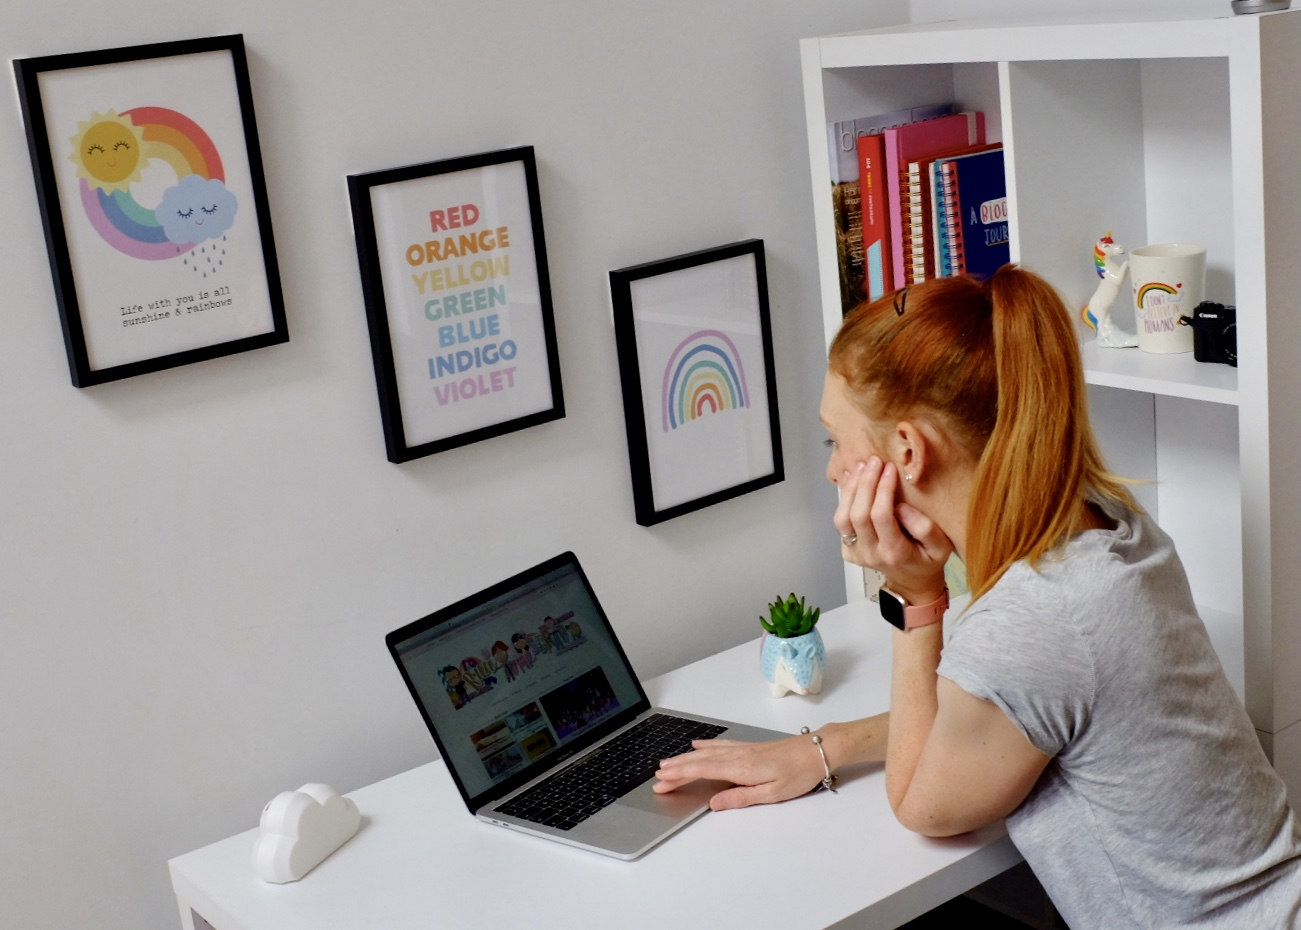 6 Reasons Why I Don't Want to Work from Home